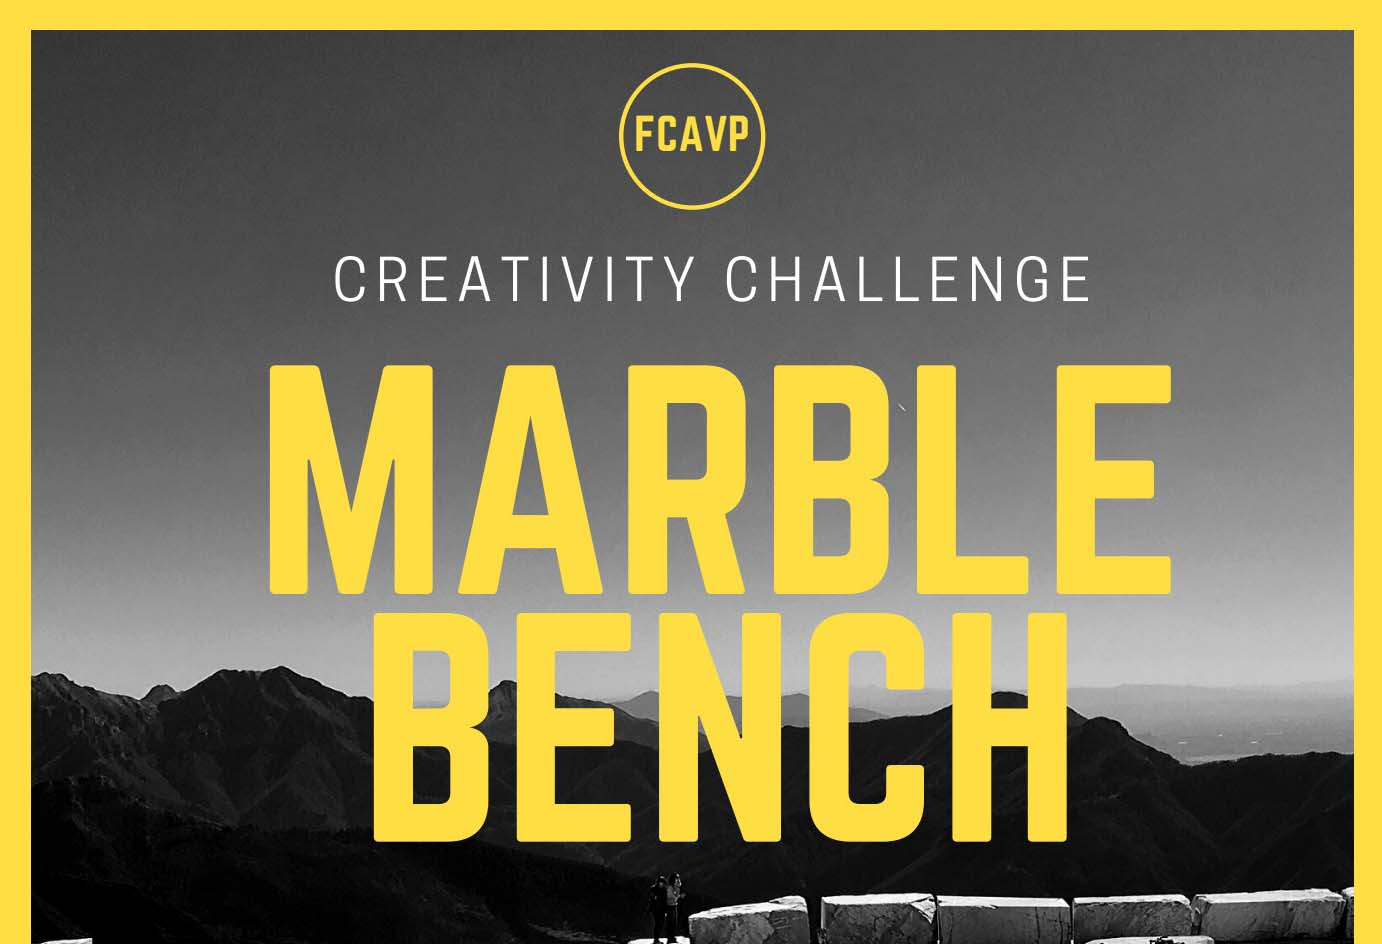 MARBLE BENCH. CREATIVITY CHALLENGE.